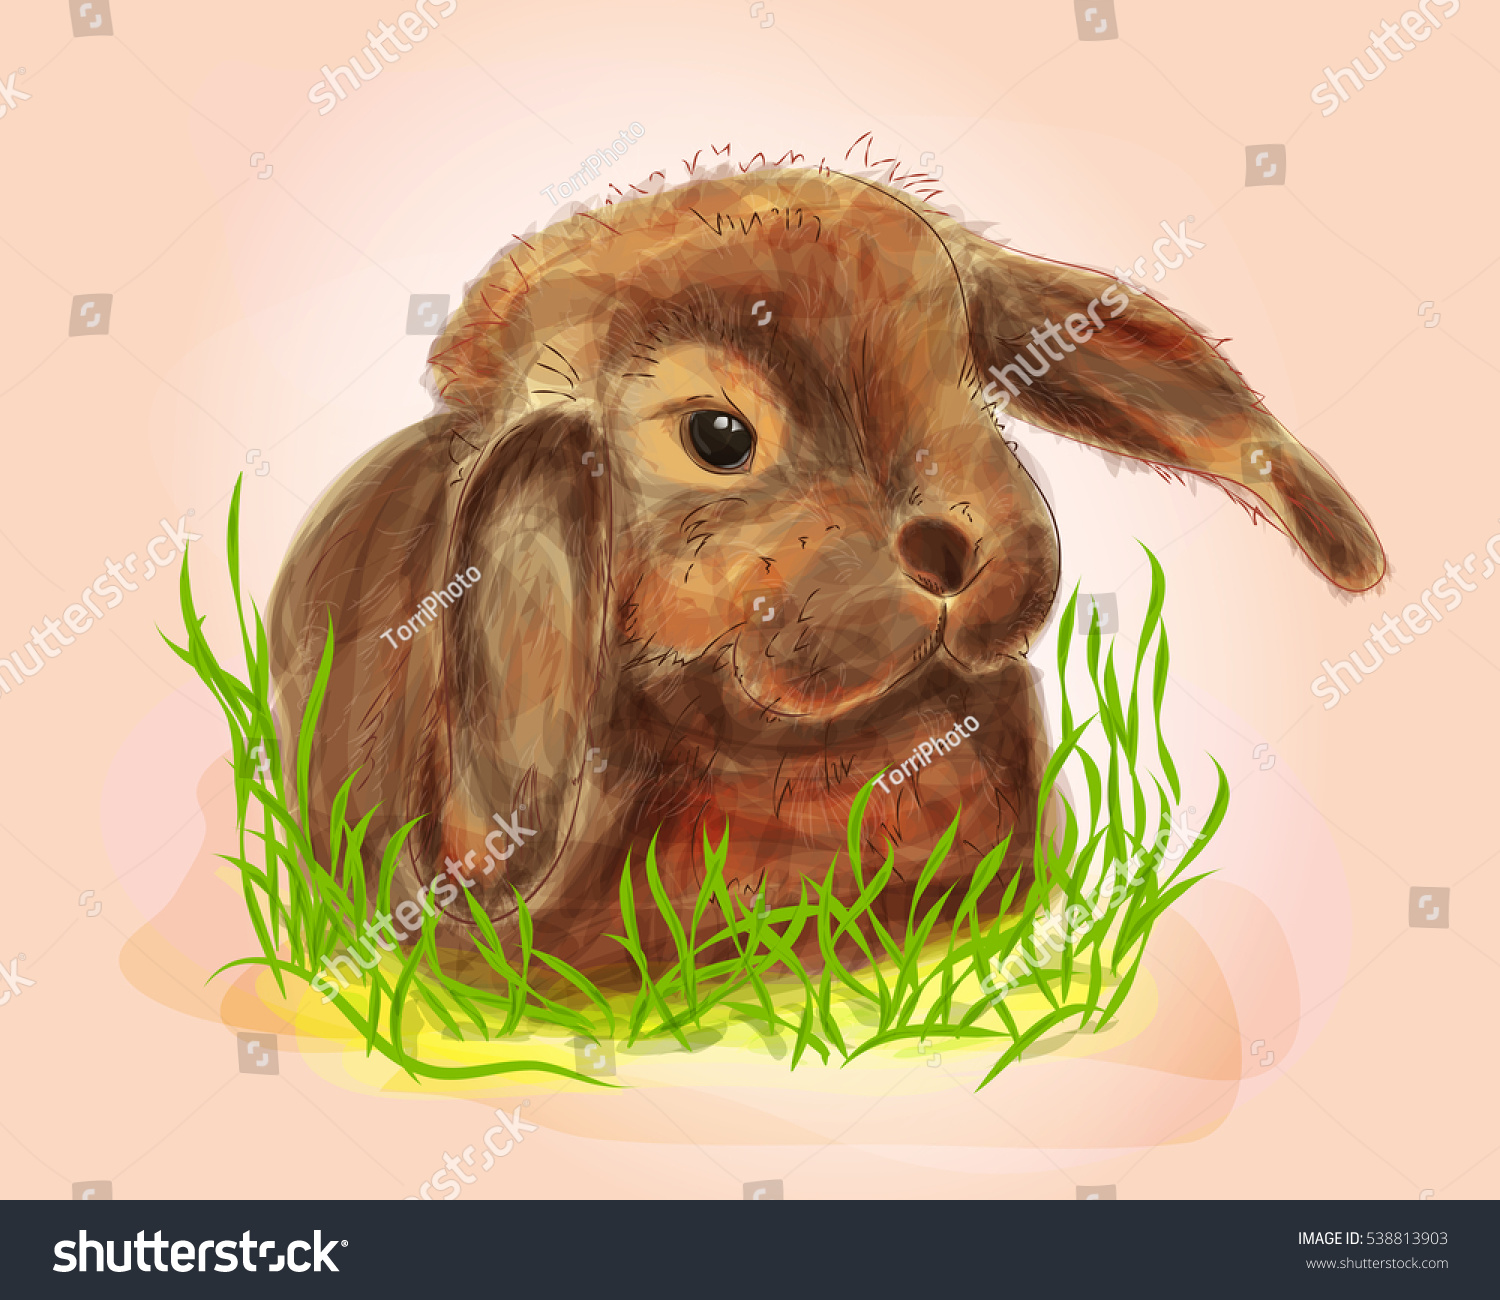 https://www.shutterstock.com/image-illustration/digital-illustration-cute-bunny-grass-watercolor-538813903